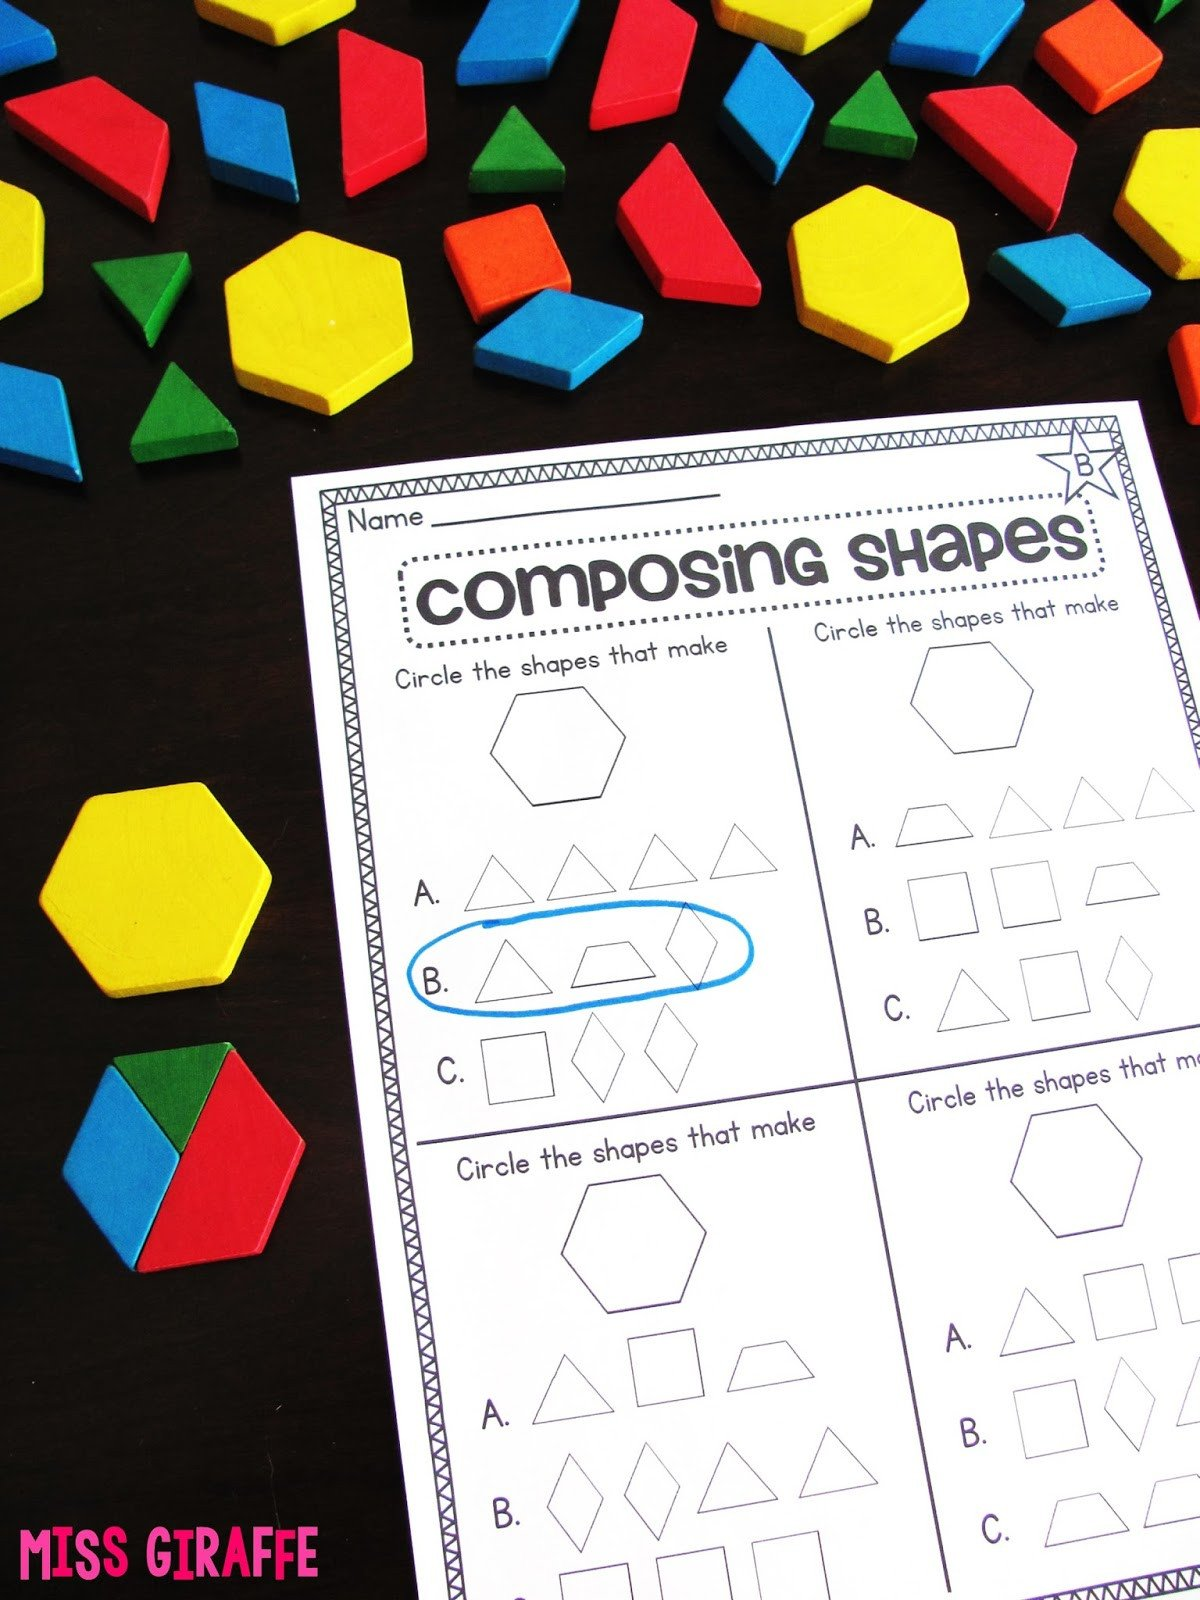 Kindergarten 3d Shapes Worksheets Miss Giraffe S Class Posing Shapes In 1st Grade